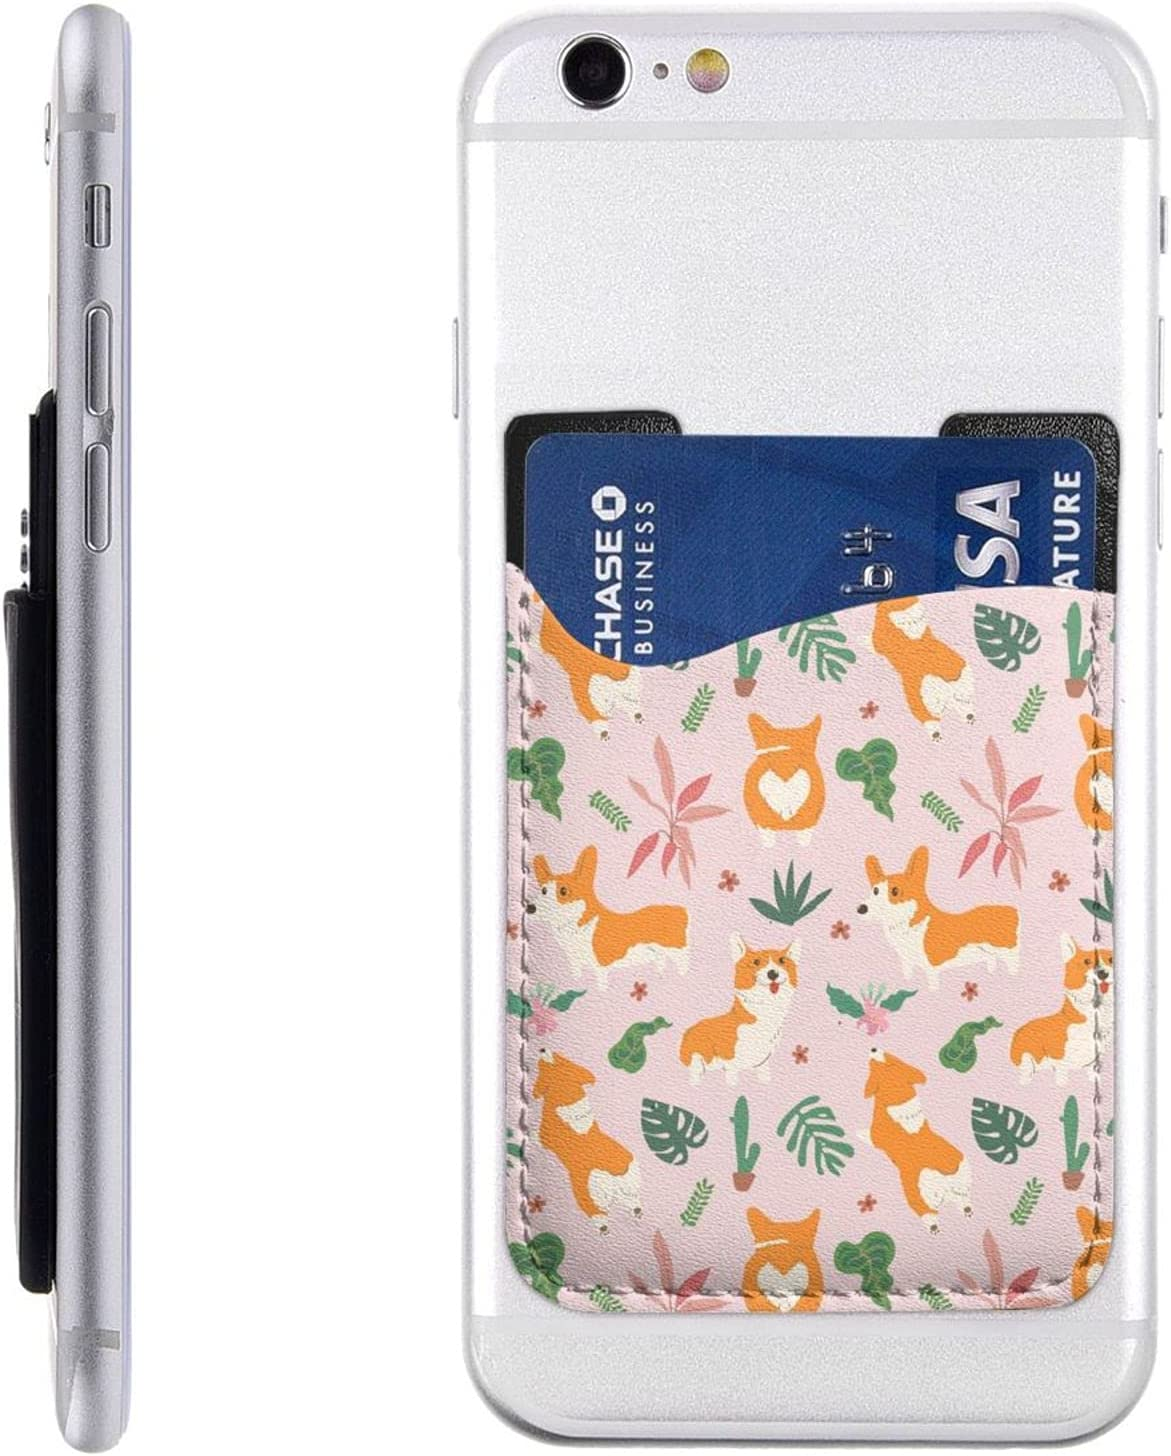 Lovely Max 53% OFF Dog Phone Card Holder Sle Omaha Mall Cell Stick Wallet On